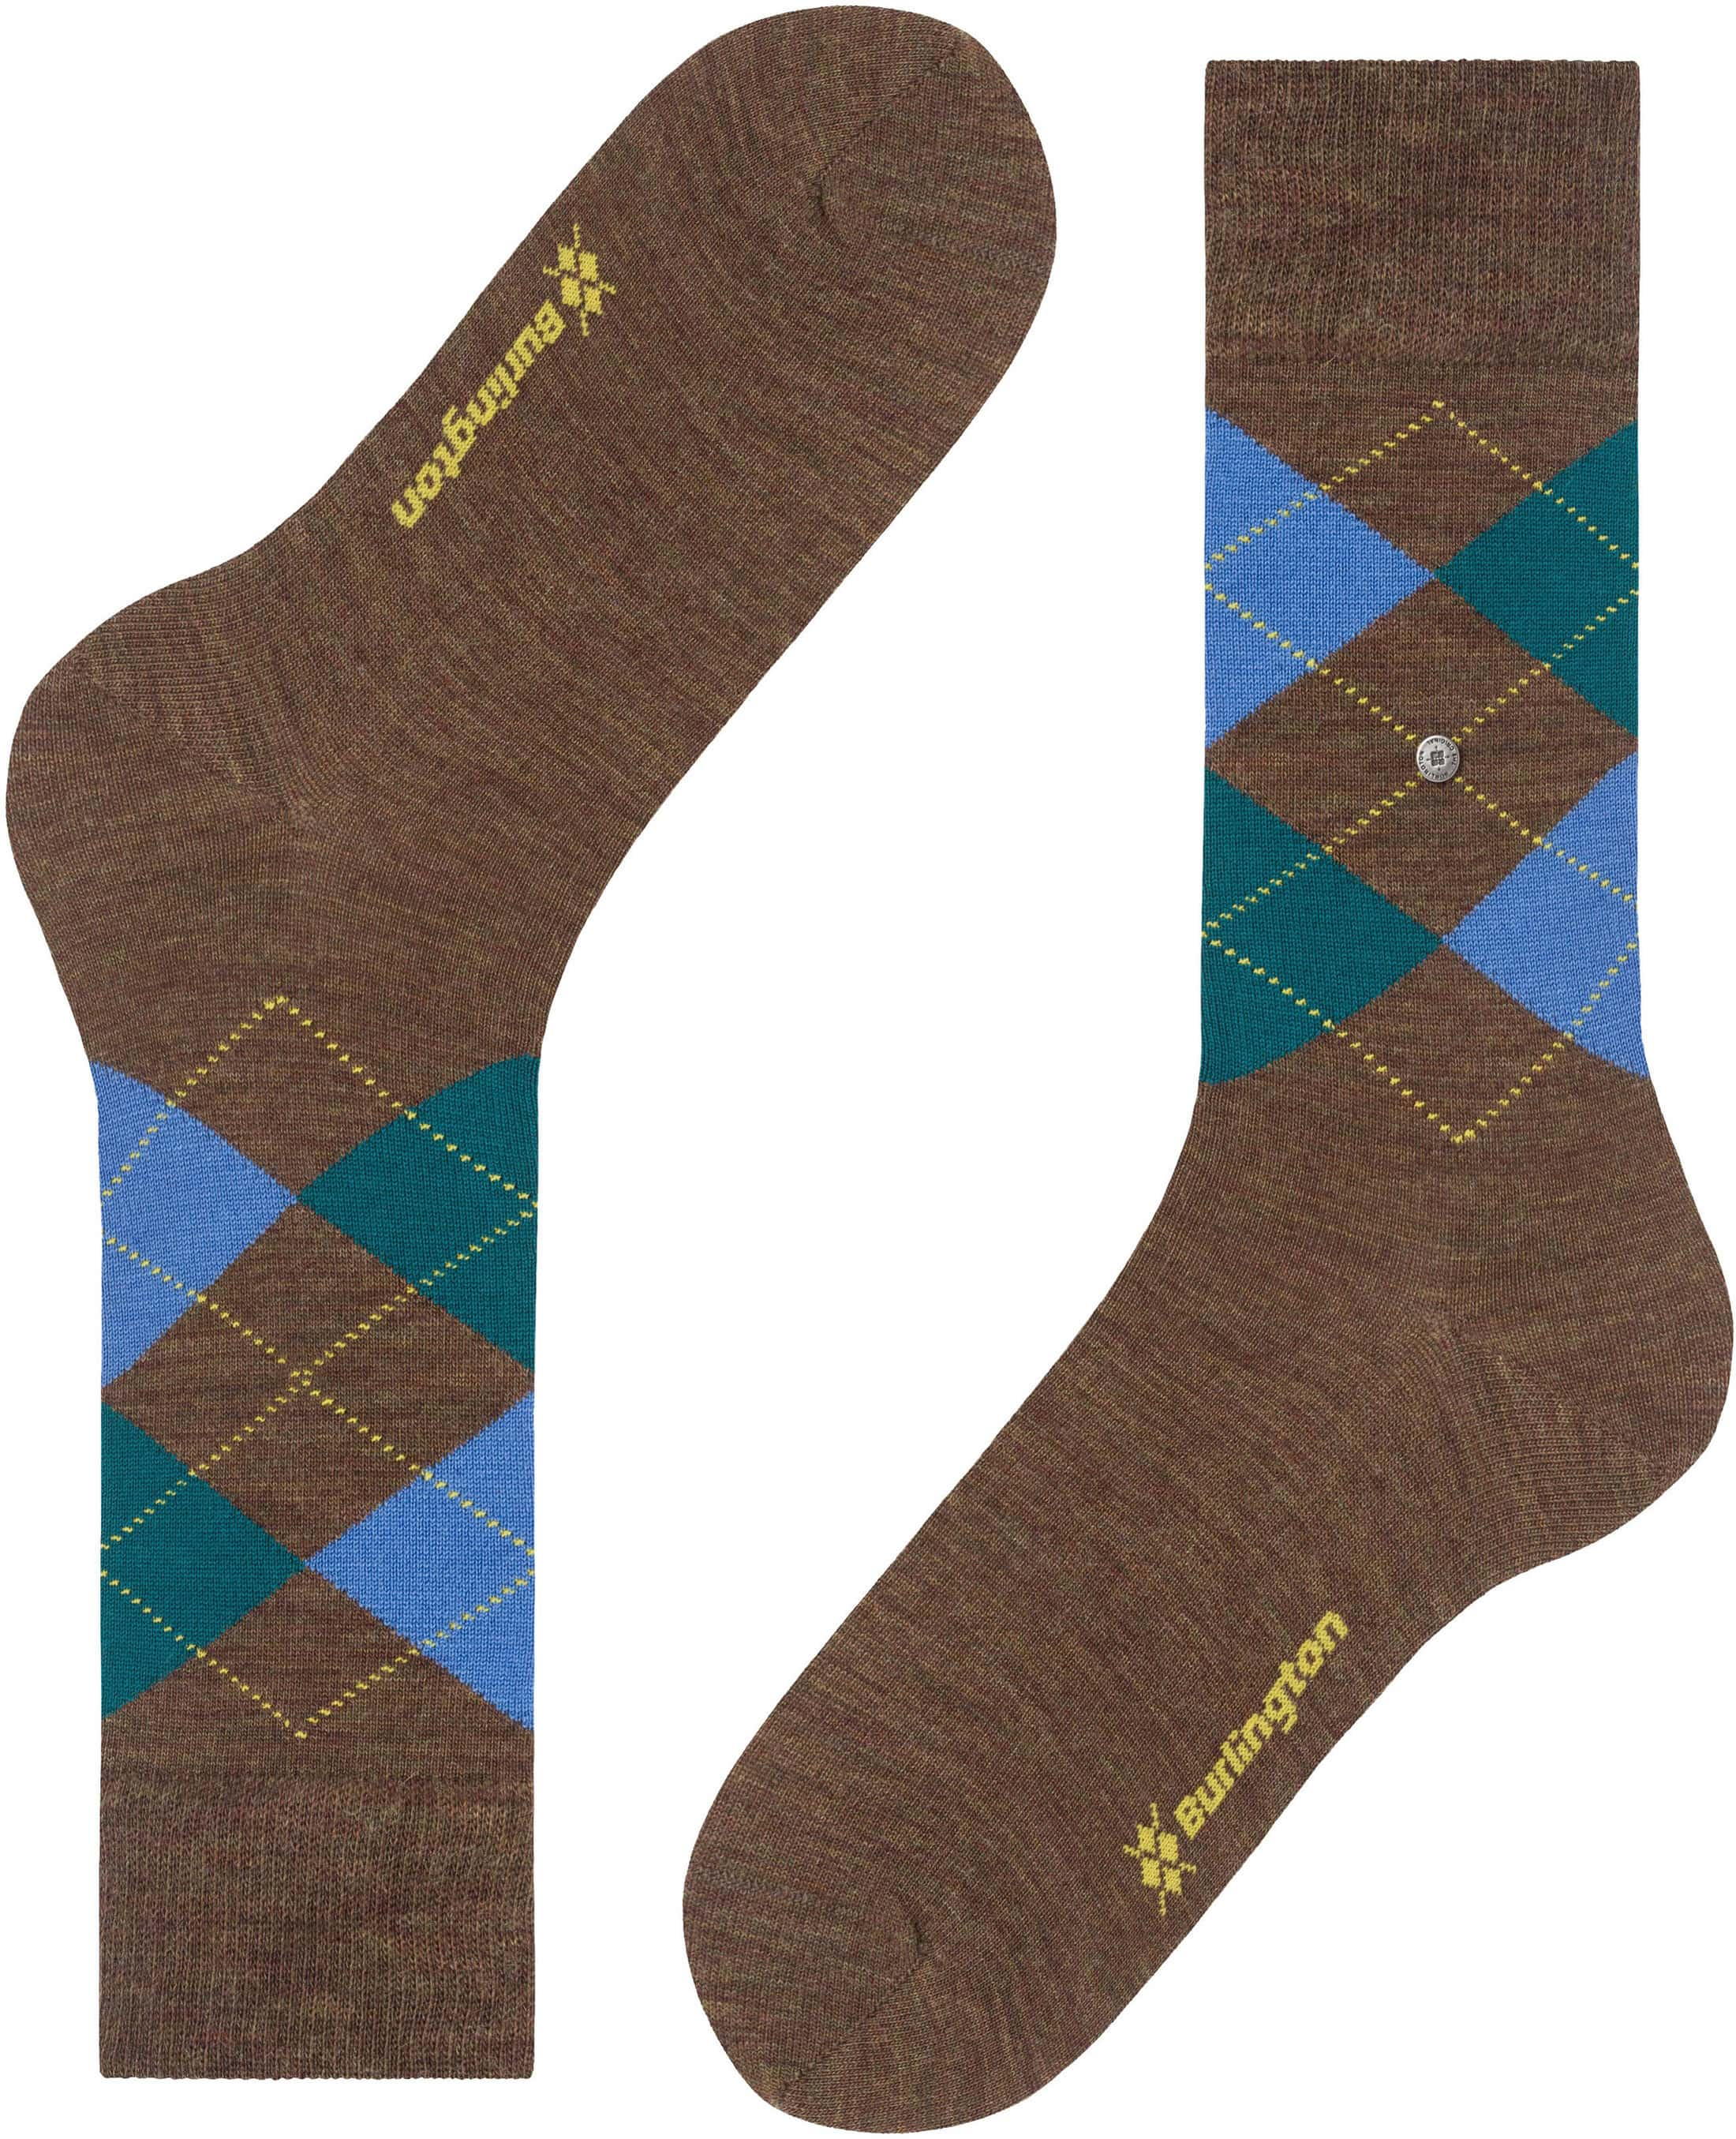 Burlington Socks Edinburgh 7465 foto 4